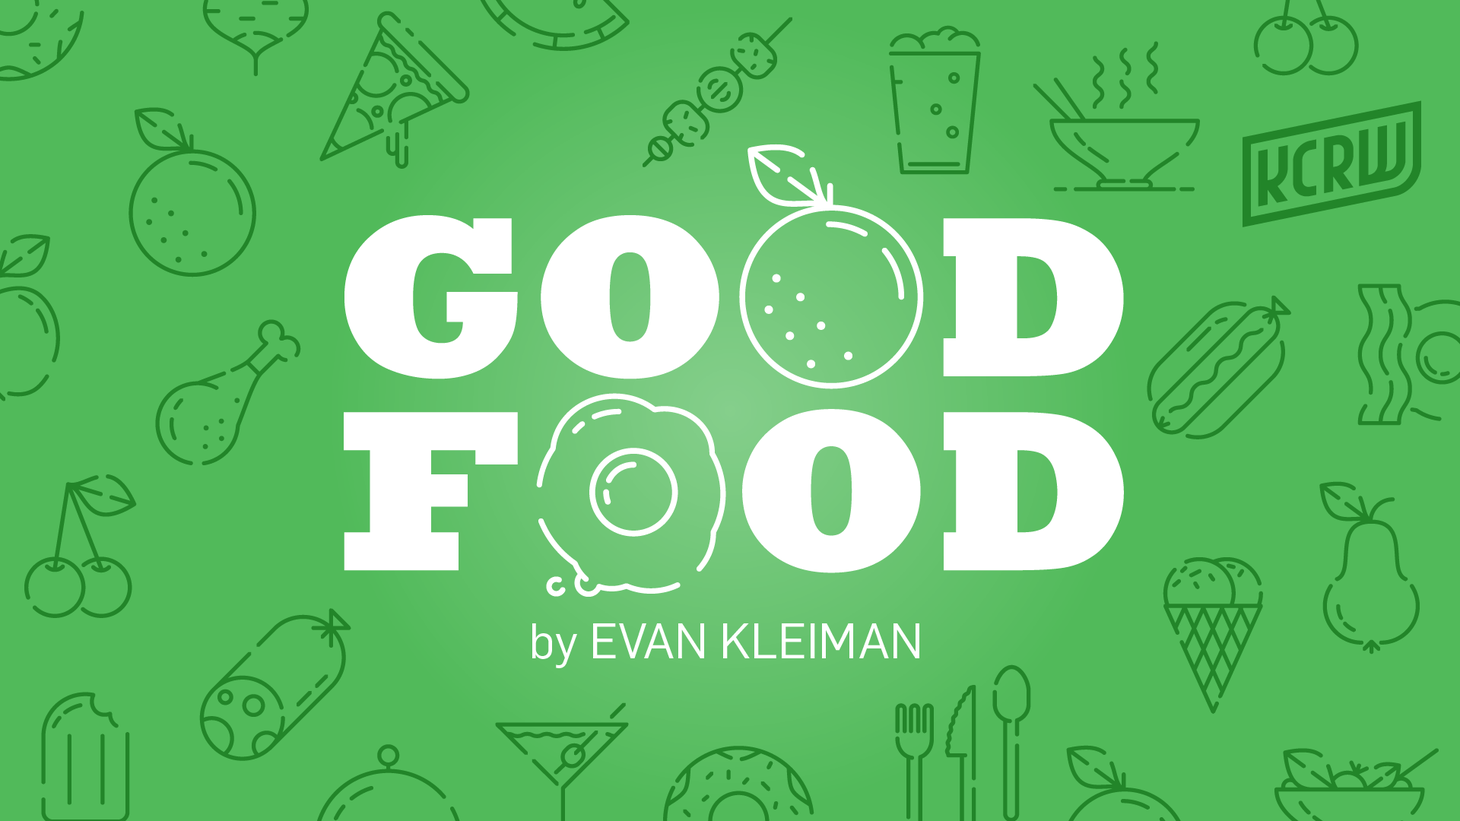 This Saturday on Good Food, we'll out why gas stations are the largest growing food retailer in America with Phil Lempert;  we'll also see how one bottle of wine can cost $200 and another only $5.99 with our expert Stacie Hunt.  We'll taste Mediterranean street food with Anissa Alou and see what it was like for professional chef Maria Tisdall to cook in a convent.